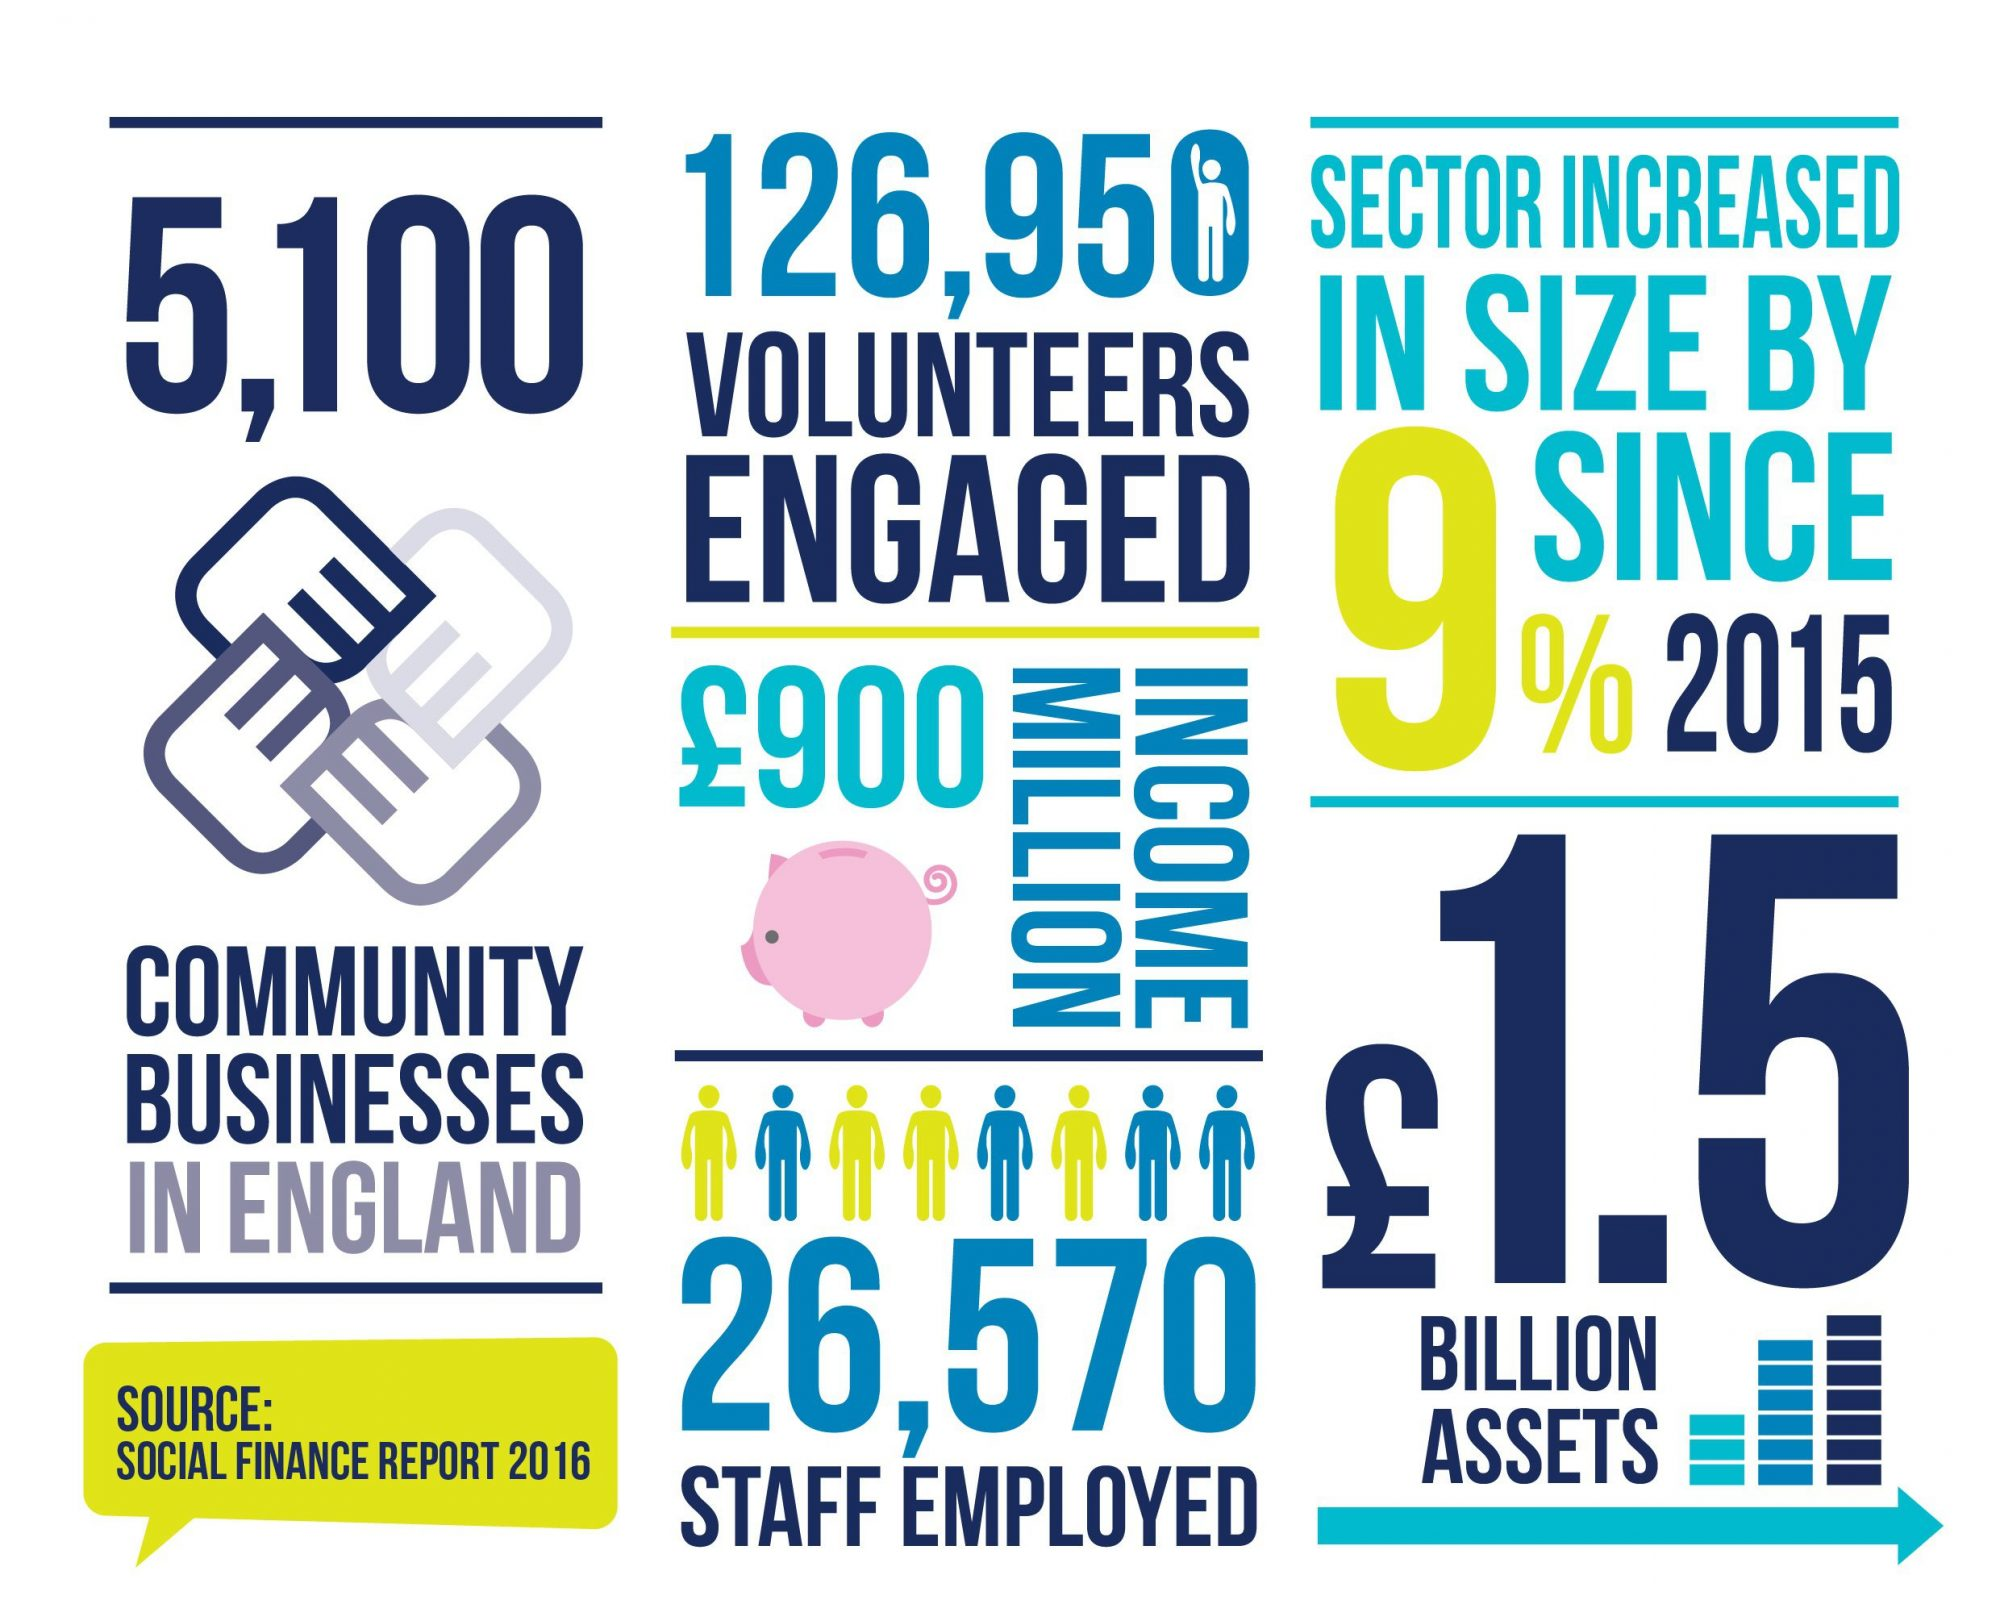 Community businesses grow 9% across England in 2015